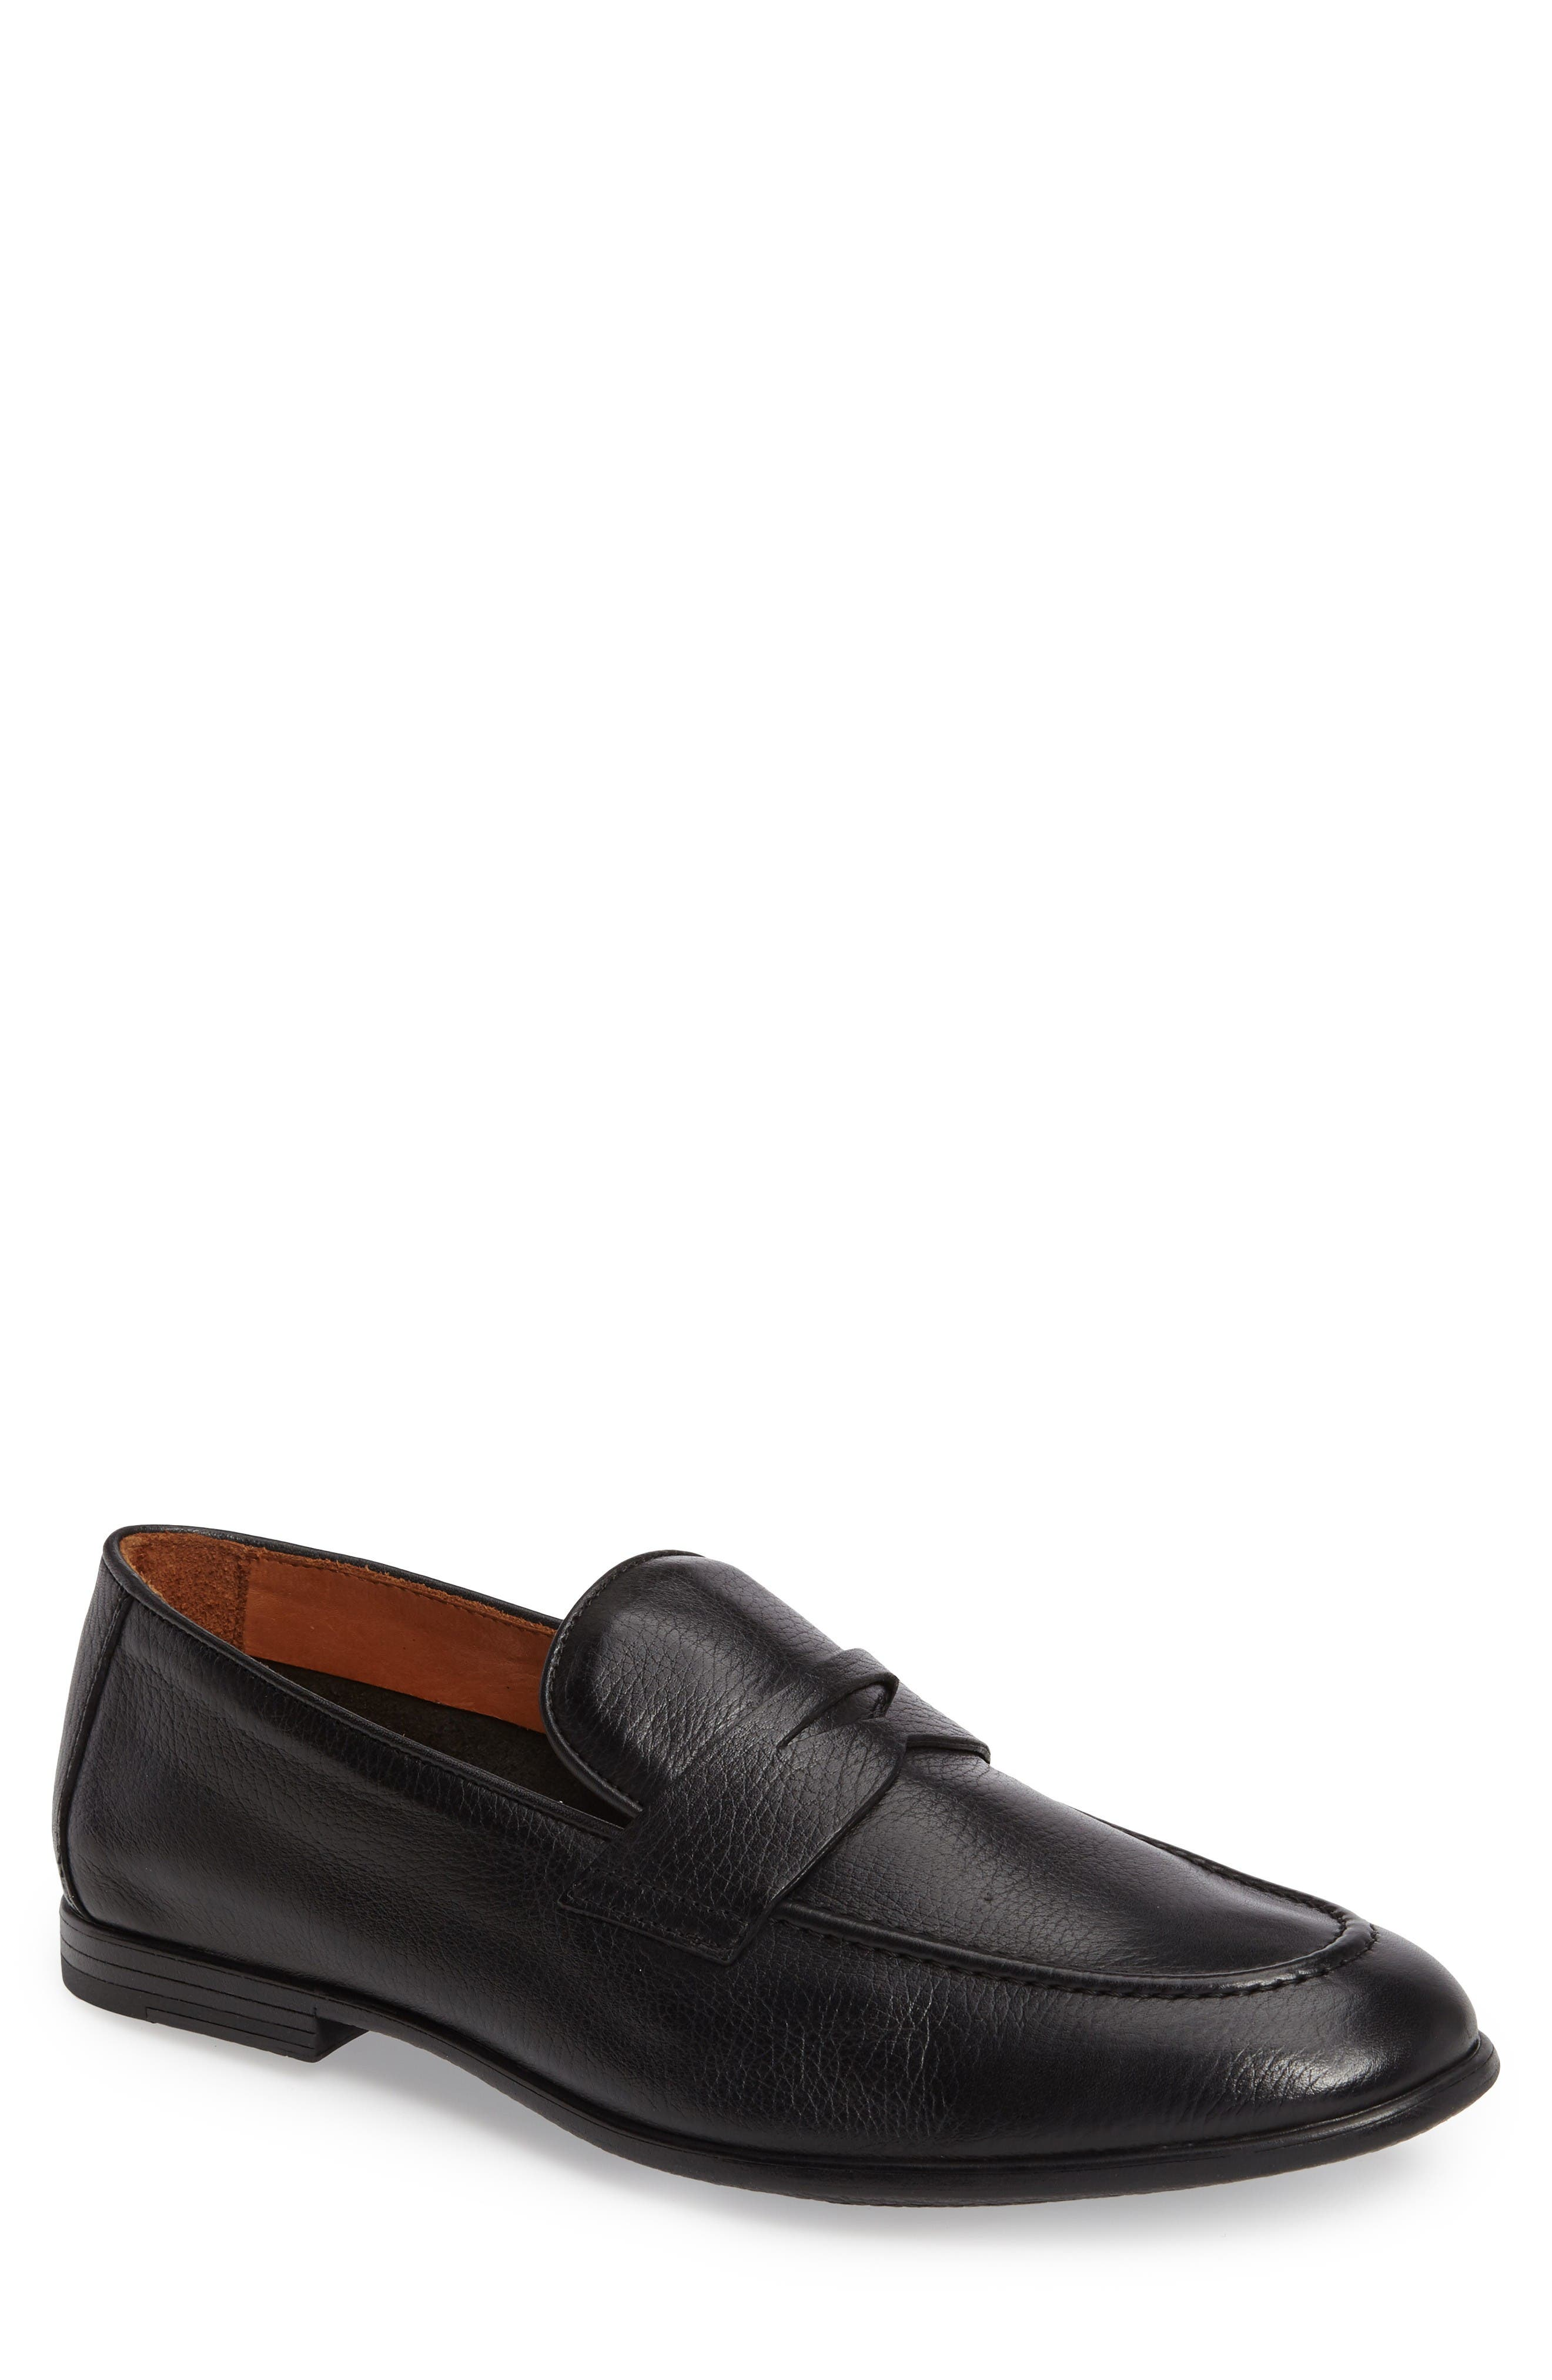 Main Image - Vince Camuto Dillon Penny Loafer (Men)